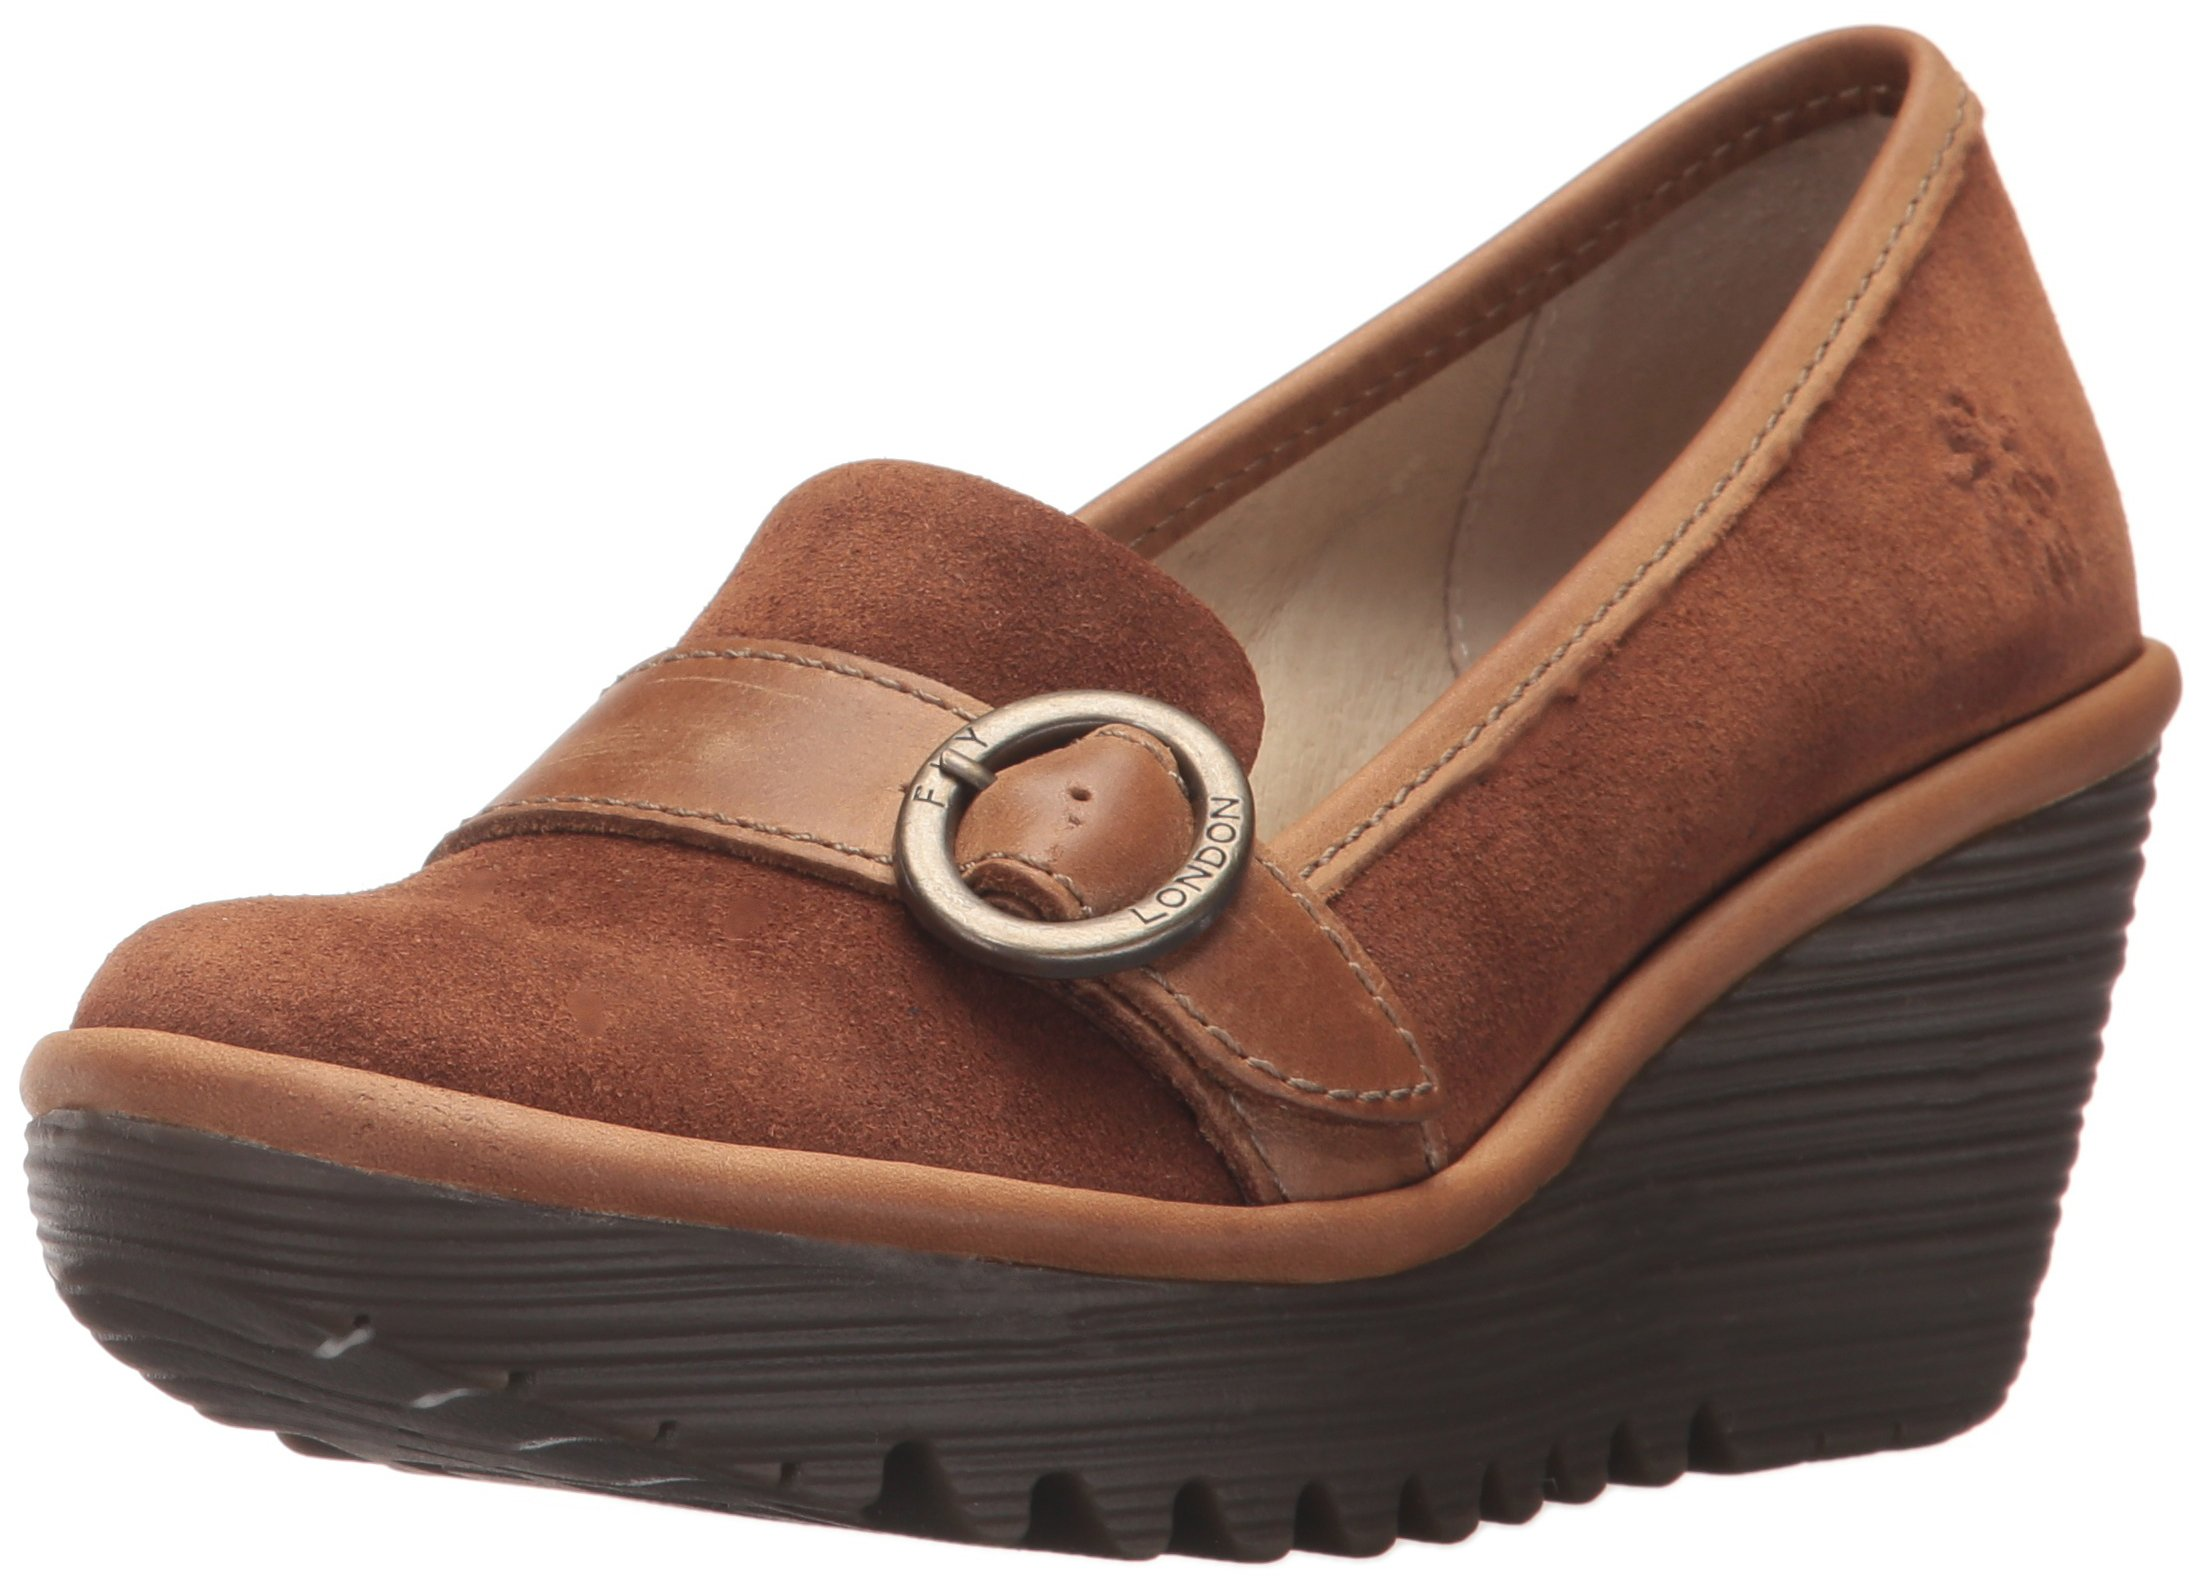 FLY London Women's YOND771FLY Loafer, Camel Oil Suede/Rug, 39 M EU (8-8.5 US) by FLY London (Image #1)